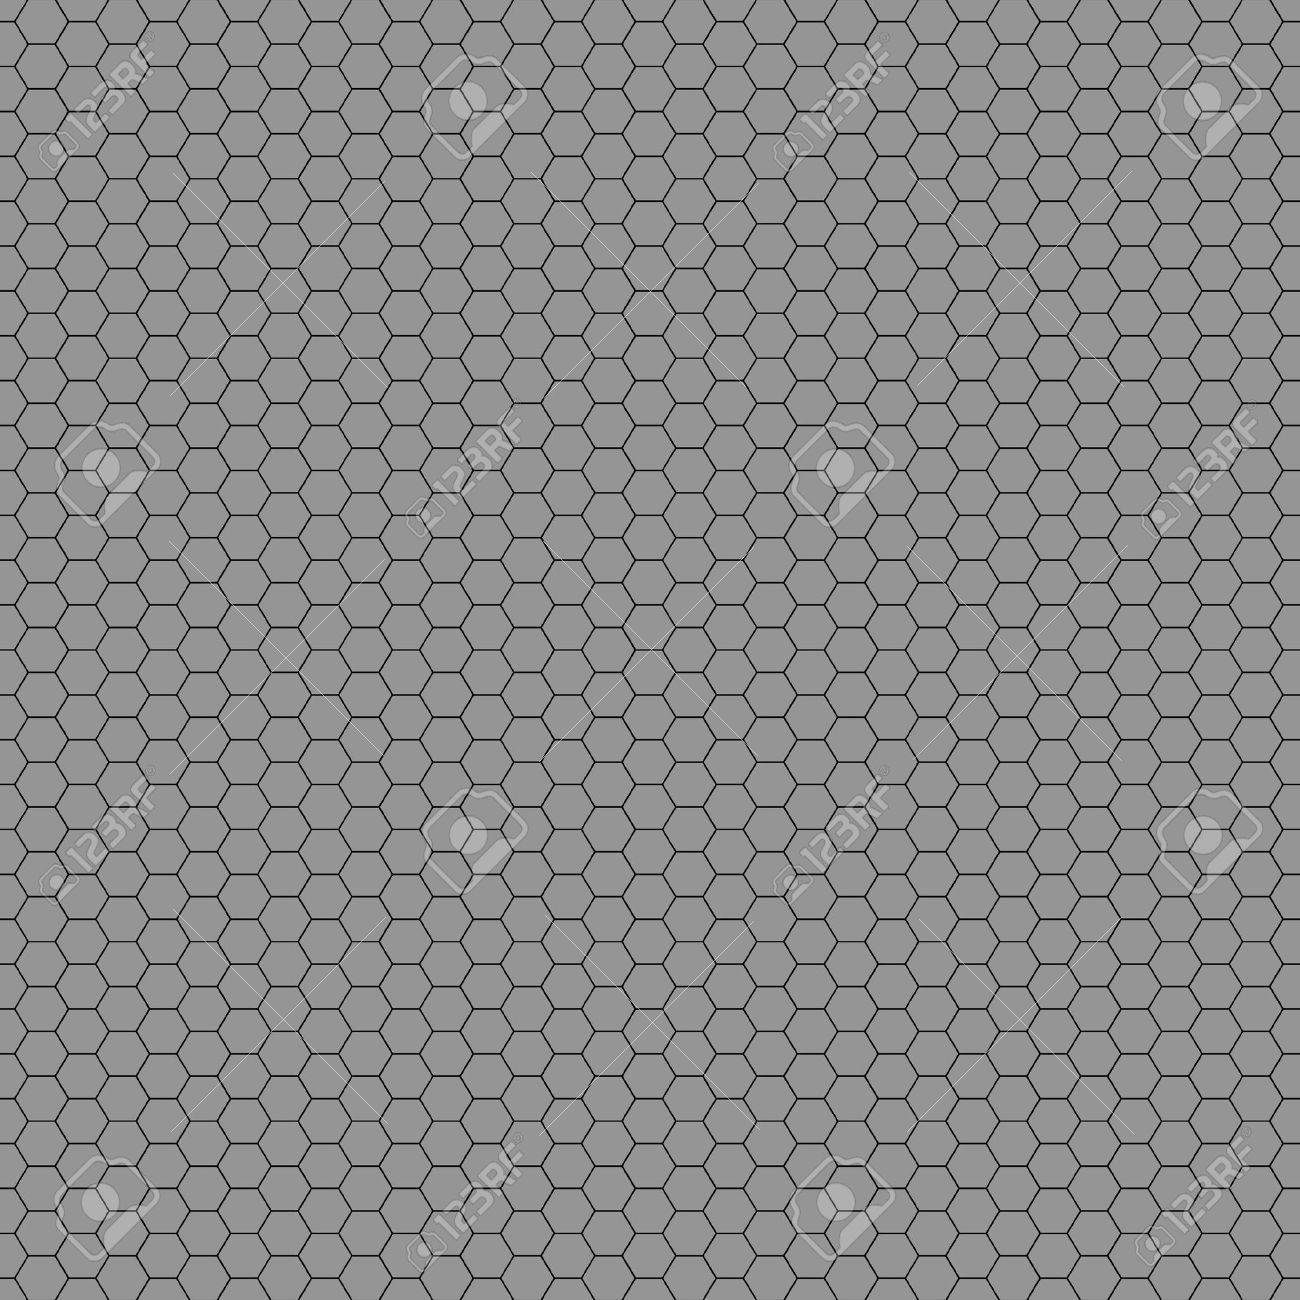 Seamless pattern with metal bars on a gray background - 12117434